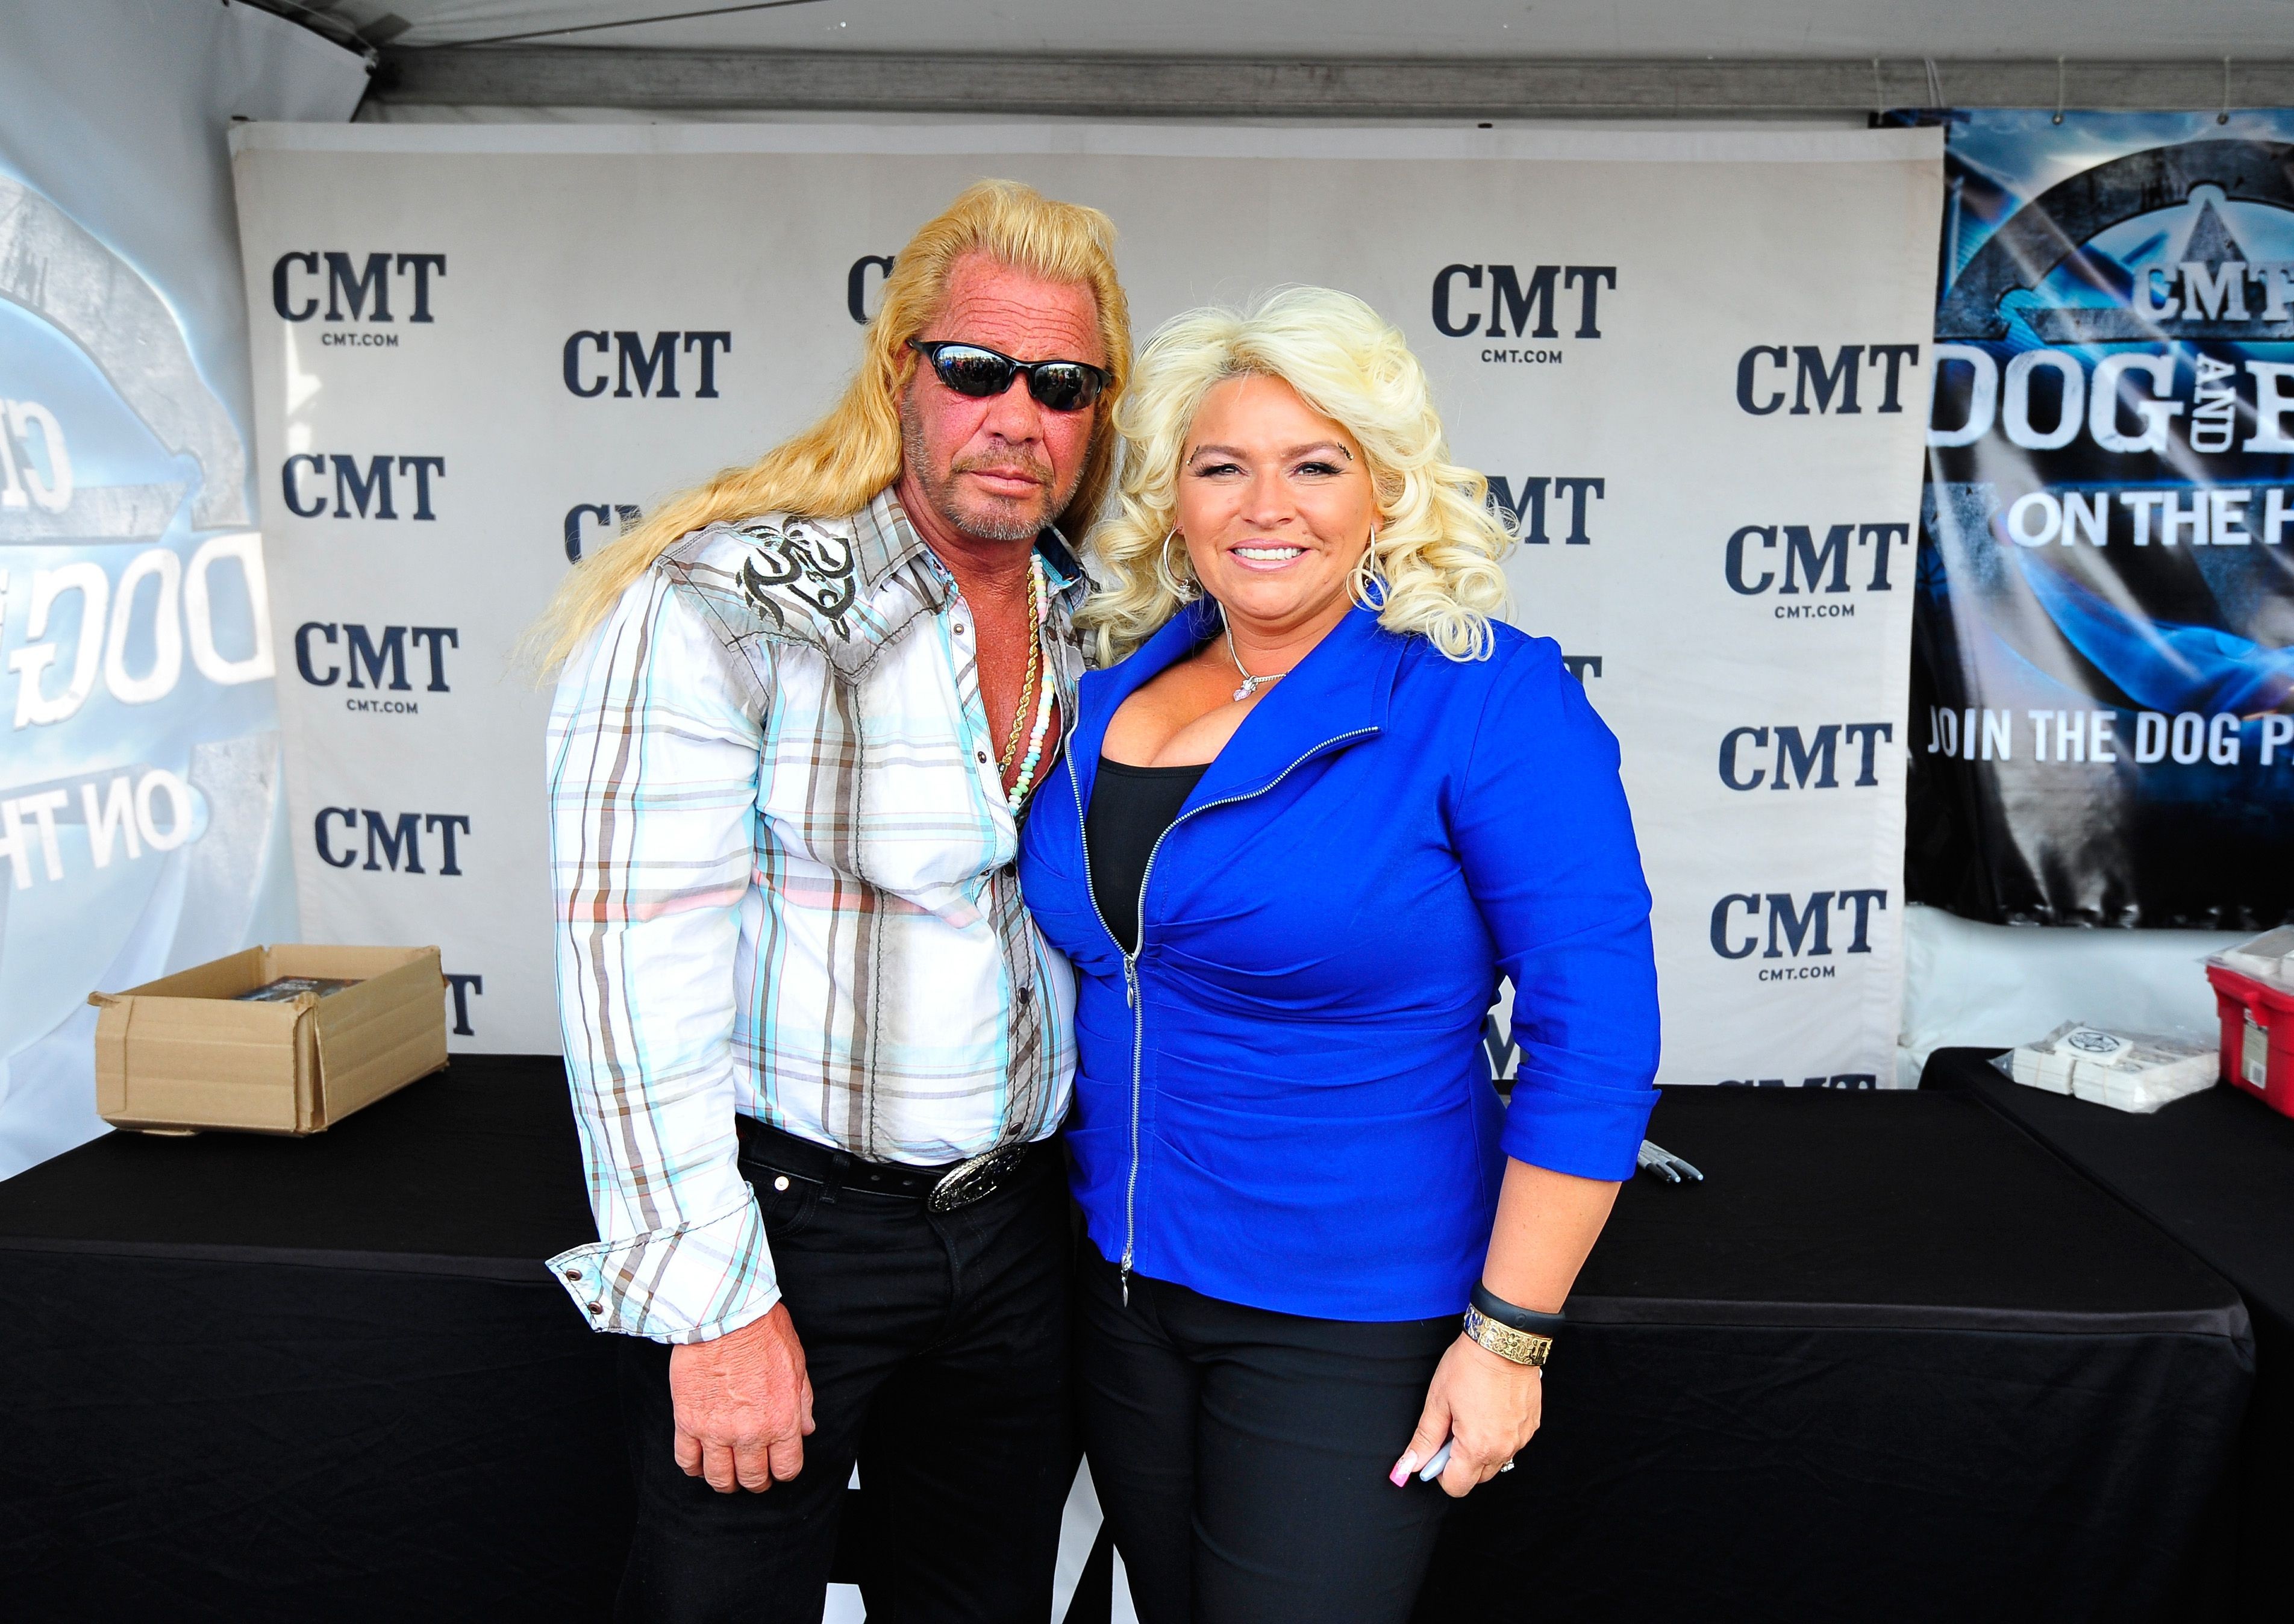 Duane 'Dog' and Beth Chapman at  the 48th Annual Academy of Country Music Awards at the Orleans Arena on April 5, 2013 | Getty Images